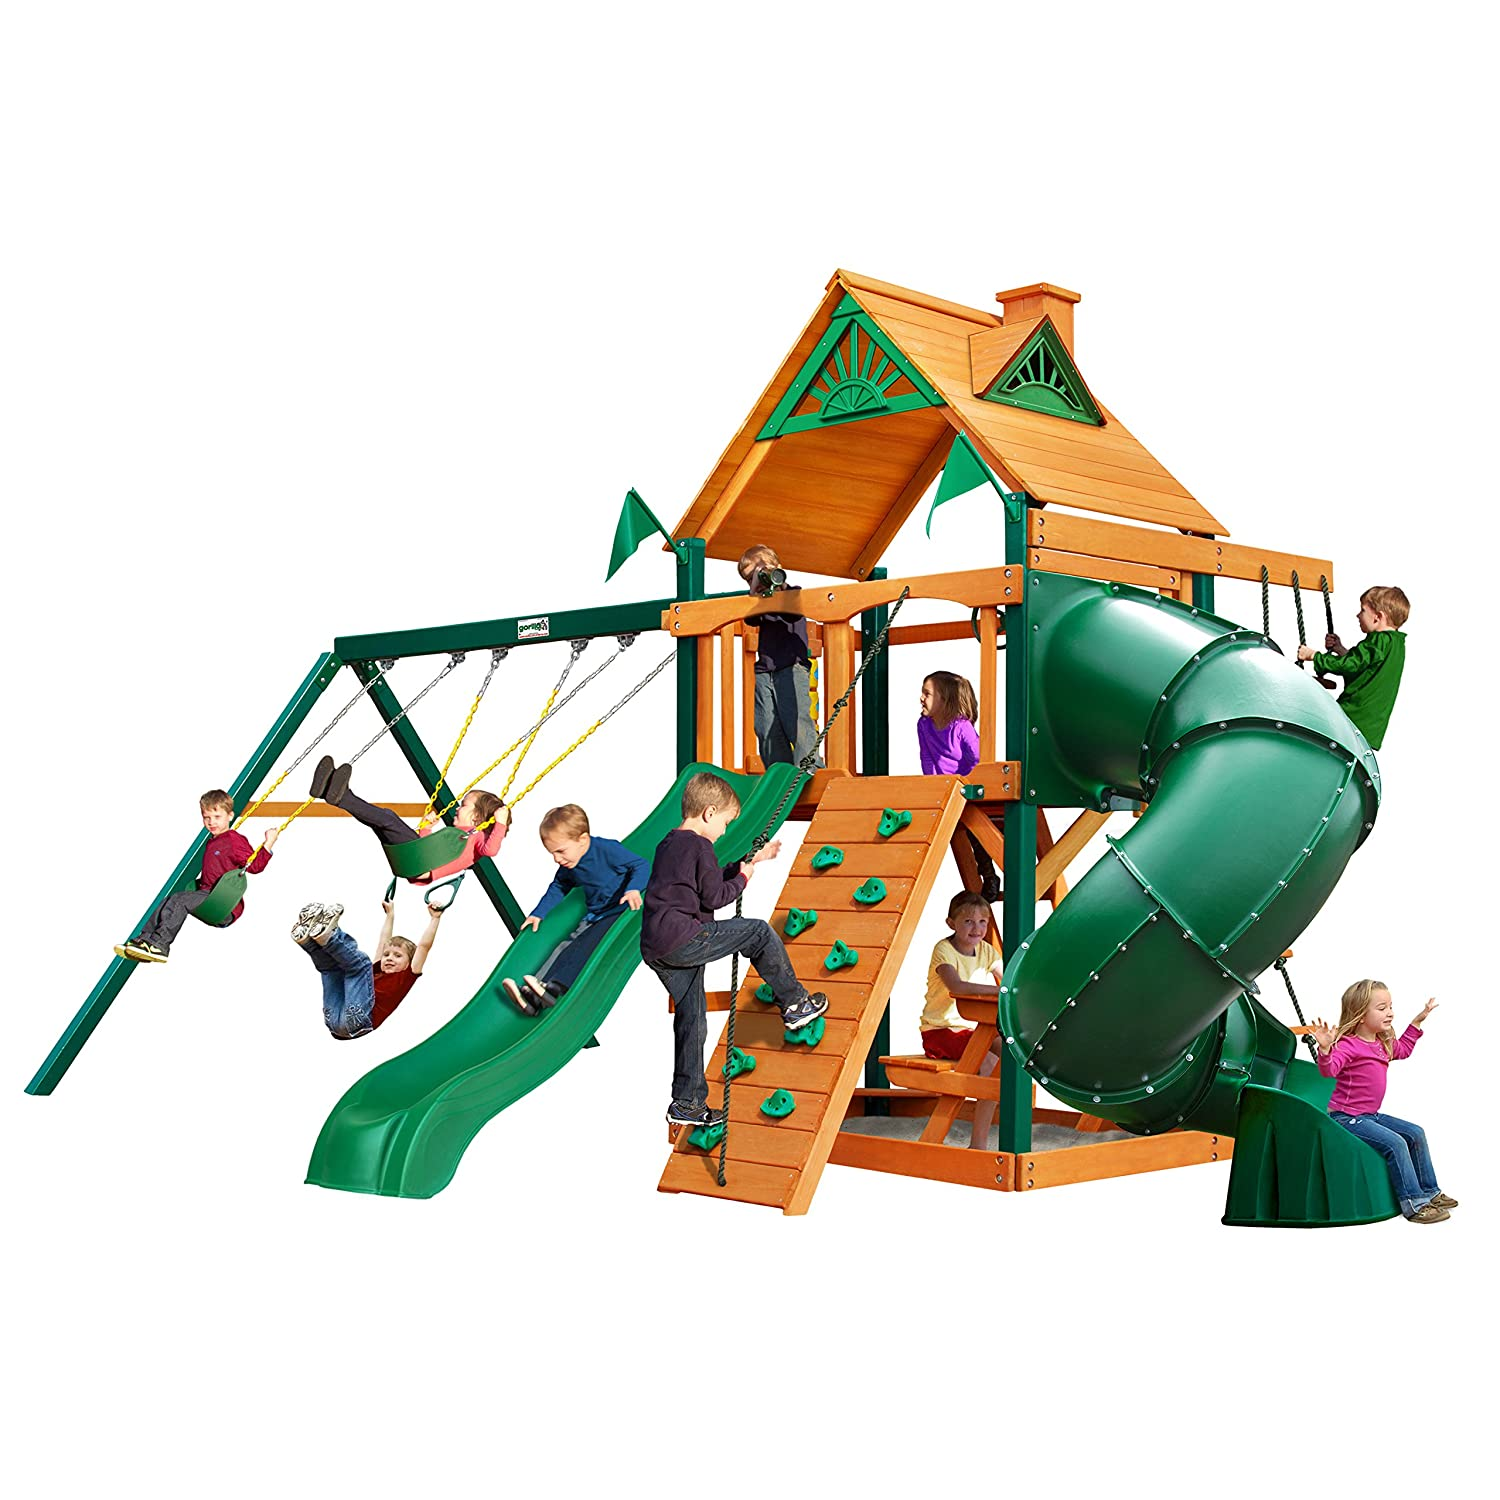 Swing-N-Slide Mountaineer Cedar Play and Swing Set, swing sets, best swing sets, kids swing sets, swing sets for small yards, best outdoor playsets, best backyard playsets, swing sets and playsets, backyard playsets, backyard swing sets, outdoor swing sets, swing set with slide, backyard playground sets, children's swing set, toddler swing set, metal swing sets, best wooden swing sets, best playsets, wooden playsets, wooden swing sets under 500, outdoor wooden playsets, best outdoor playset, wooden play structures, best kids swing set, best wooden playsets, top rated swing sets, kids outdoor playsets, outdoor playsets, best backyard playsets, kids playset, outdoor playsets for toddlers, best wooden swing sets, best playsets